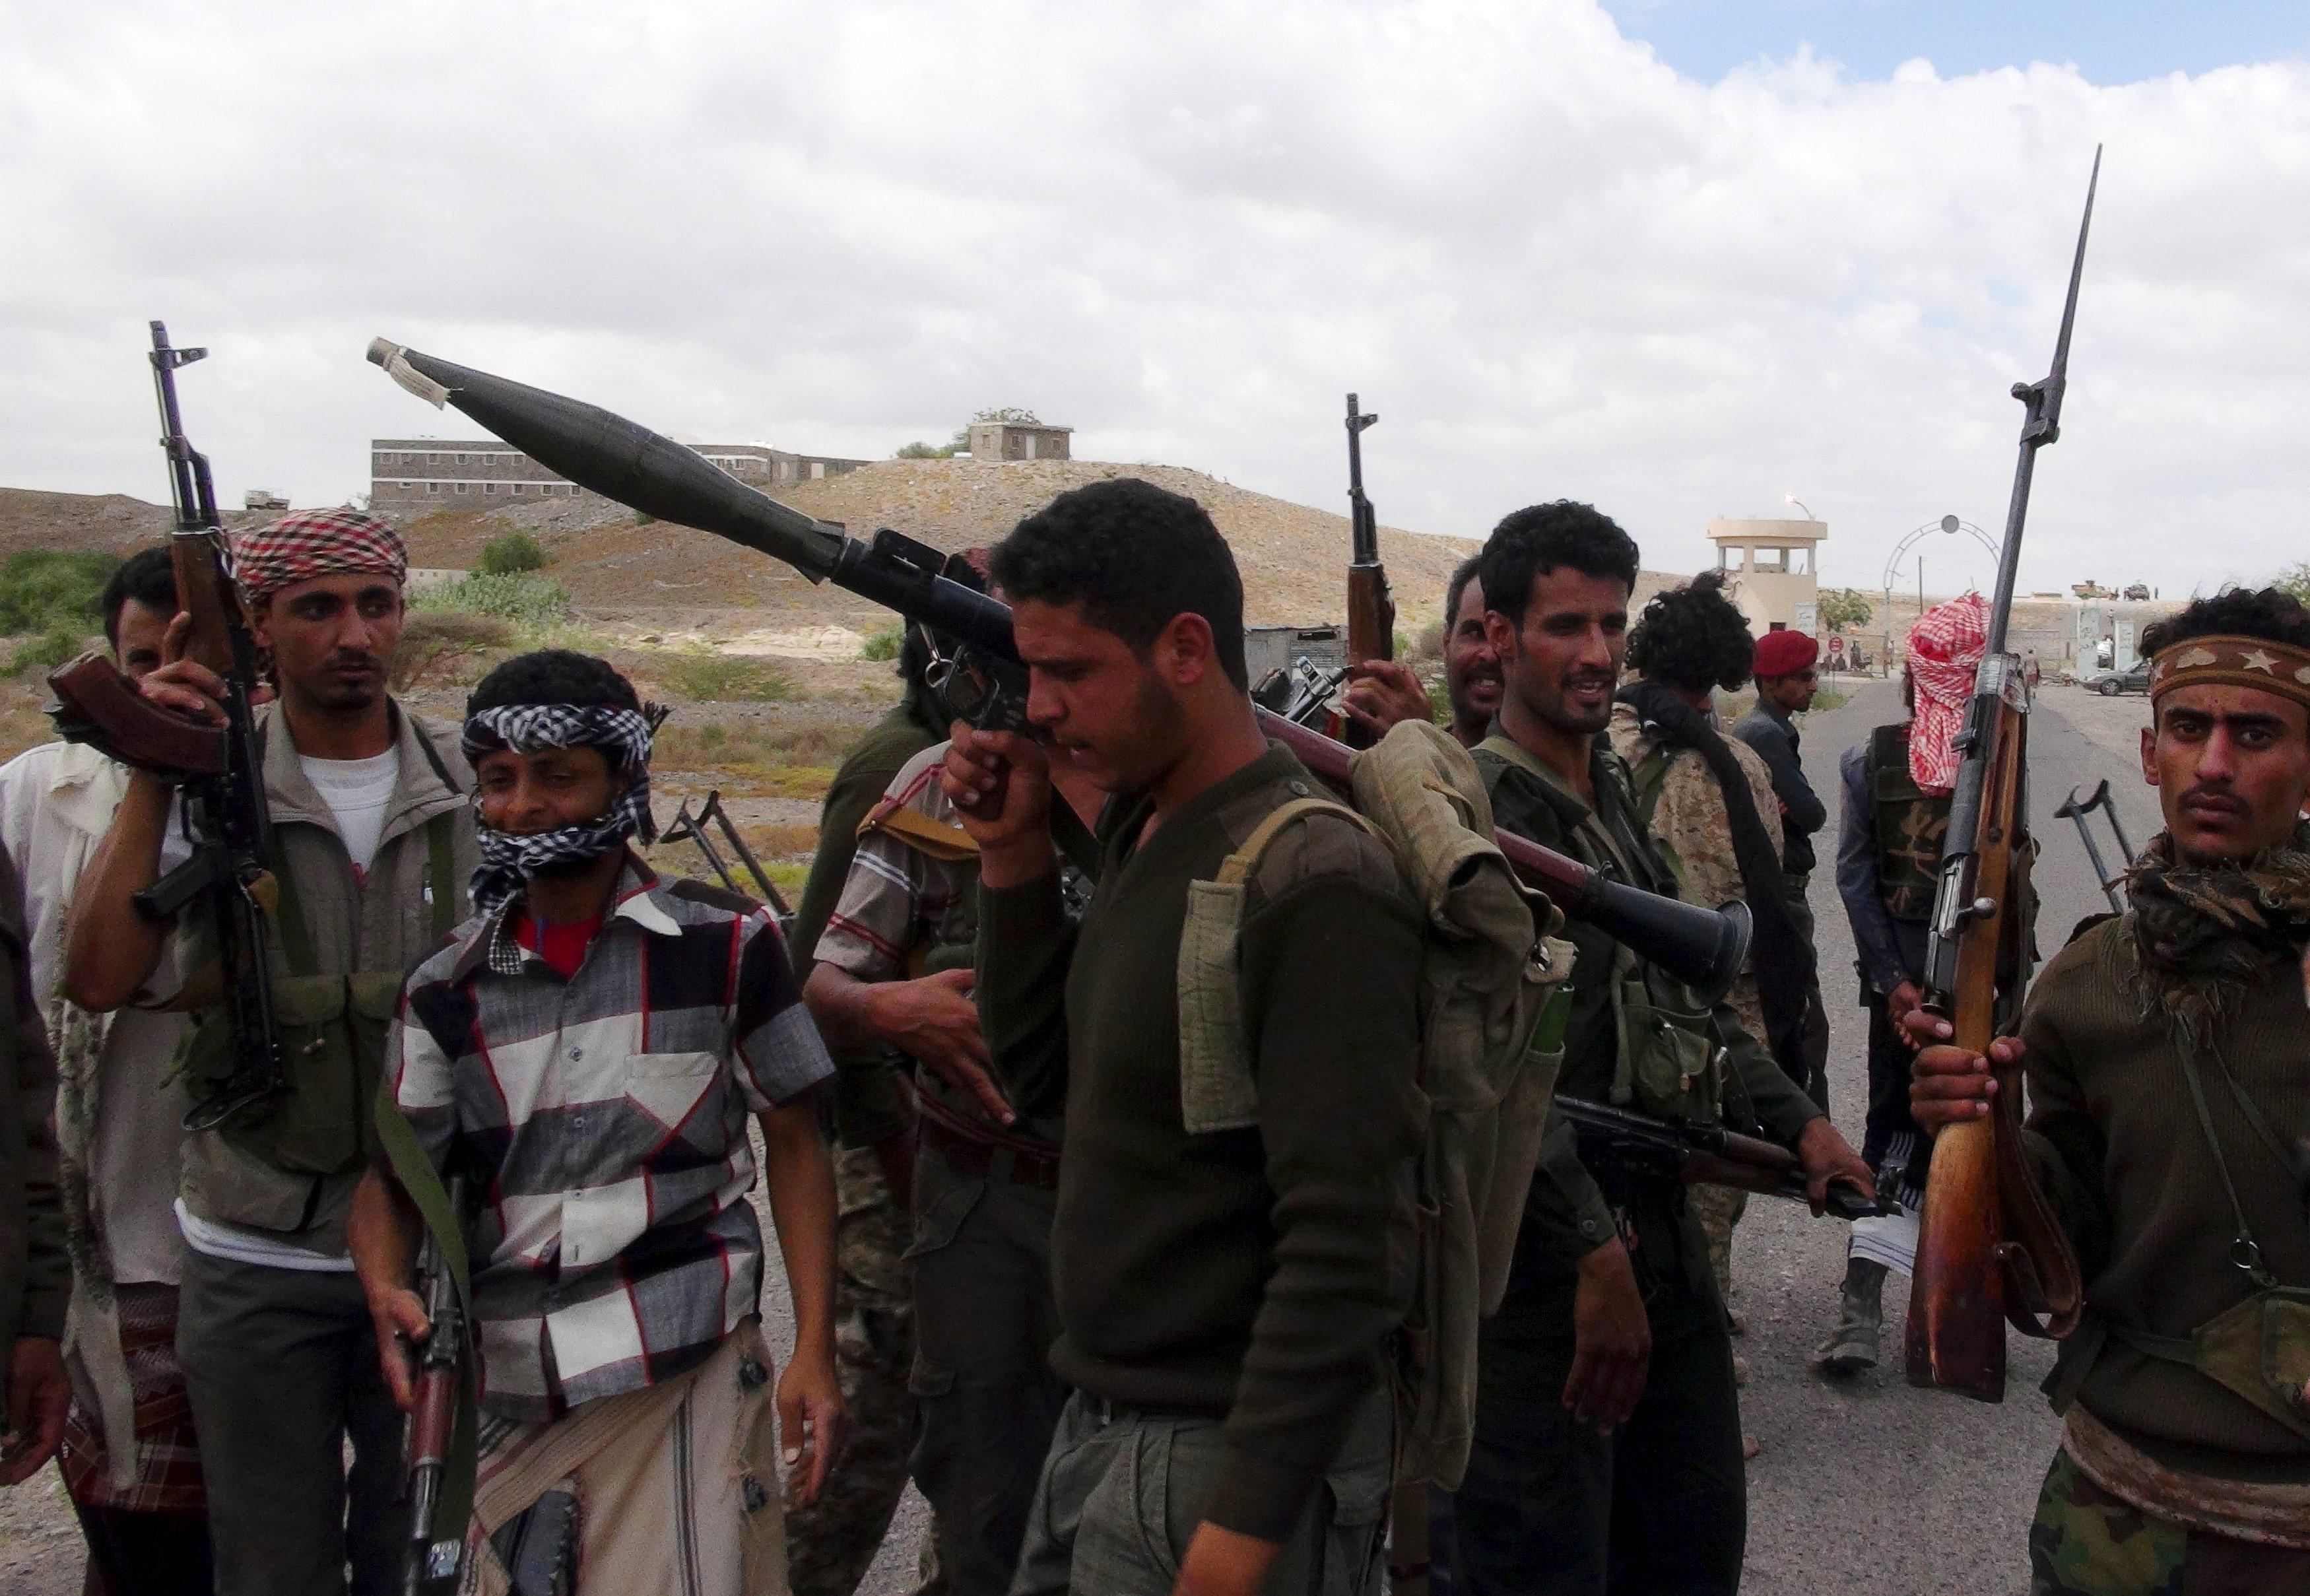 Southern People's Resistance militants loyal to Yemen's President Abd-Rabbu Mansour Hadi gather at the al-Anad air base in the country's southern province of Lahej, after seizing it March 22, 2015. Houthi fighters opposed to Yemen's president took over the central city of Taiz in an escalation of a power struggle diplomats say risks drawing in neighboring oil giant Saudi Arabia and its main regional rival Iran. Residents of Taiz, on a main road from the capital Sanaa to the country's second city of Aden, said that Houthi militias took over the city's military airport without a struggle from local authorities late on Saturday. REUTERS/Nabeel Quaiti TPX IMAGES OF THE DAY